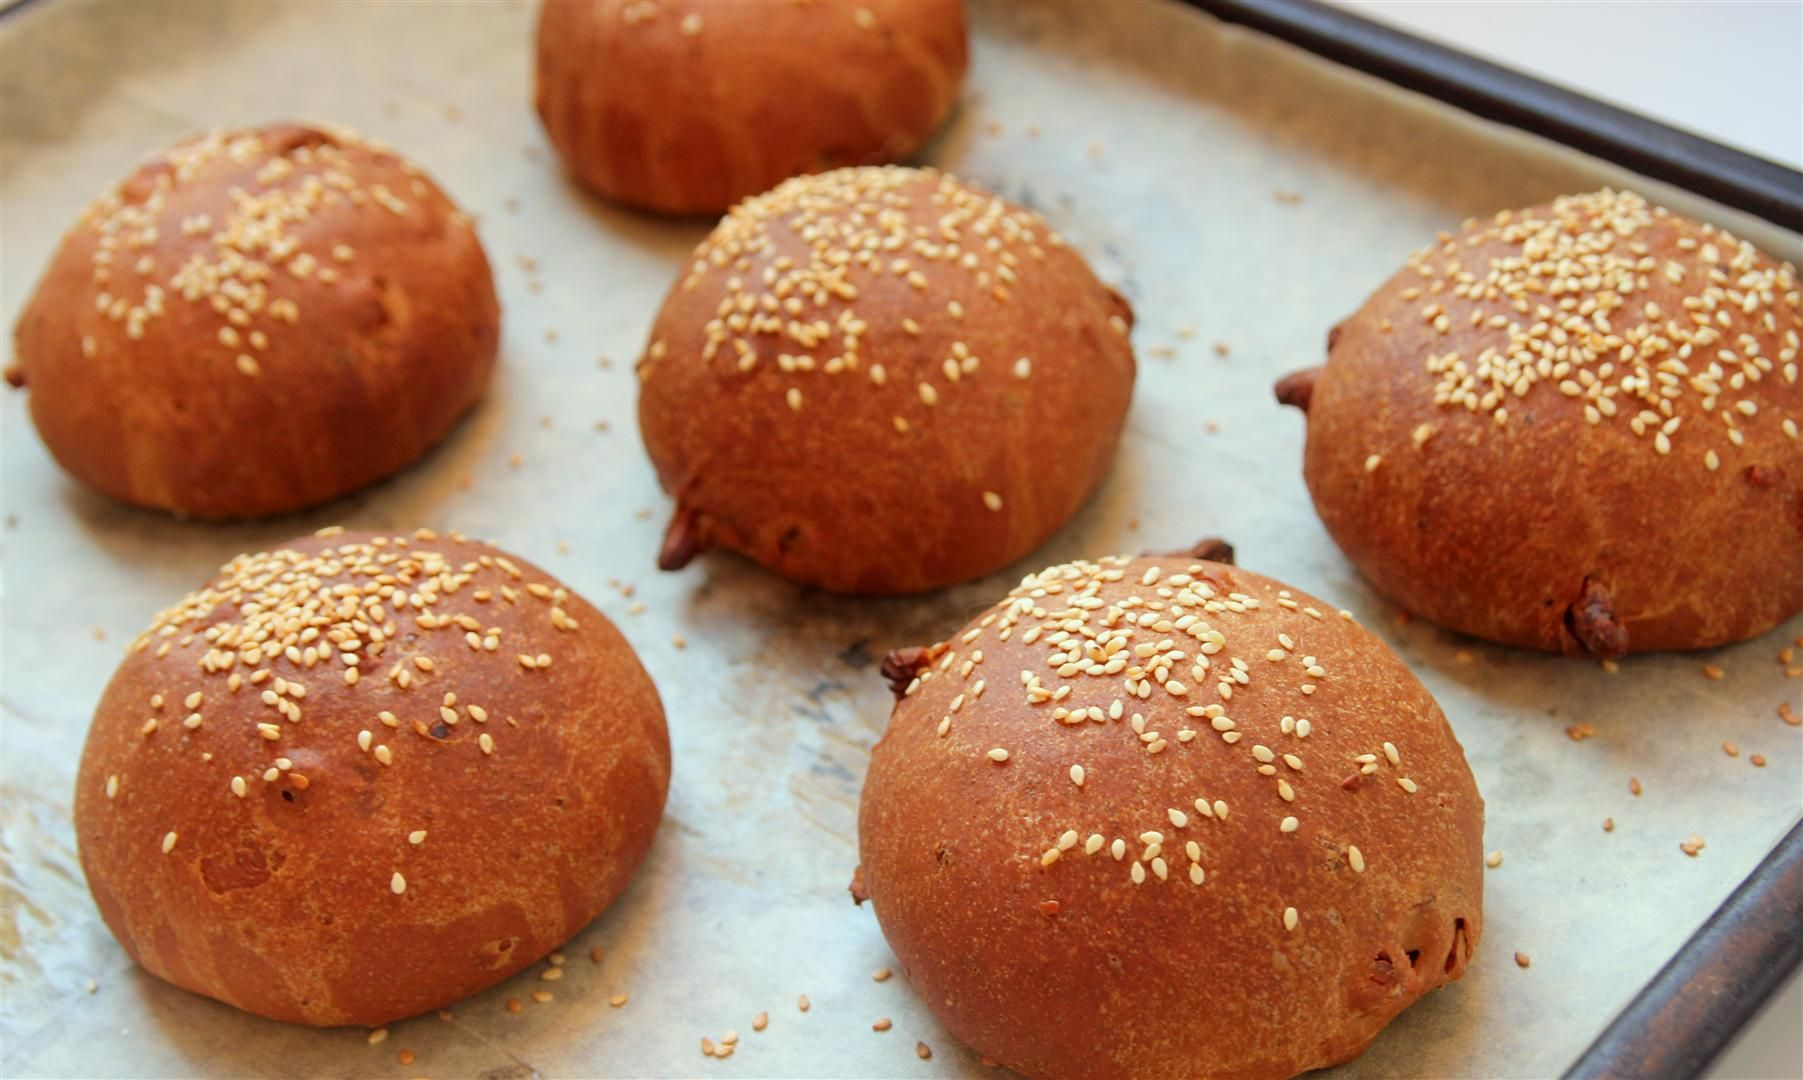 Whole Wheat Rolls with Walnuts